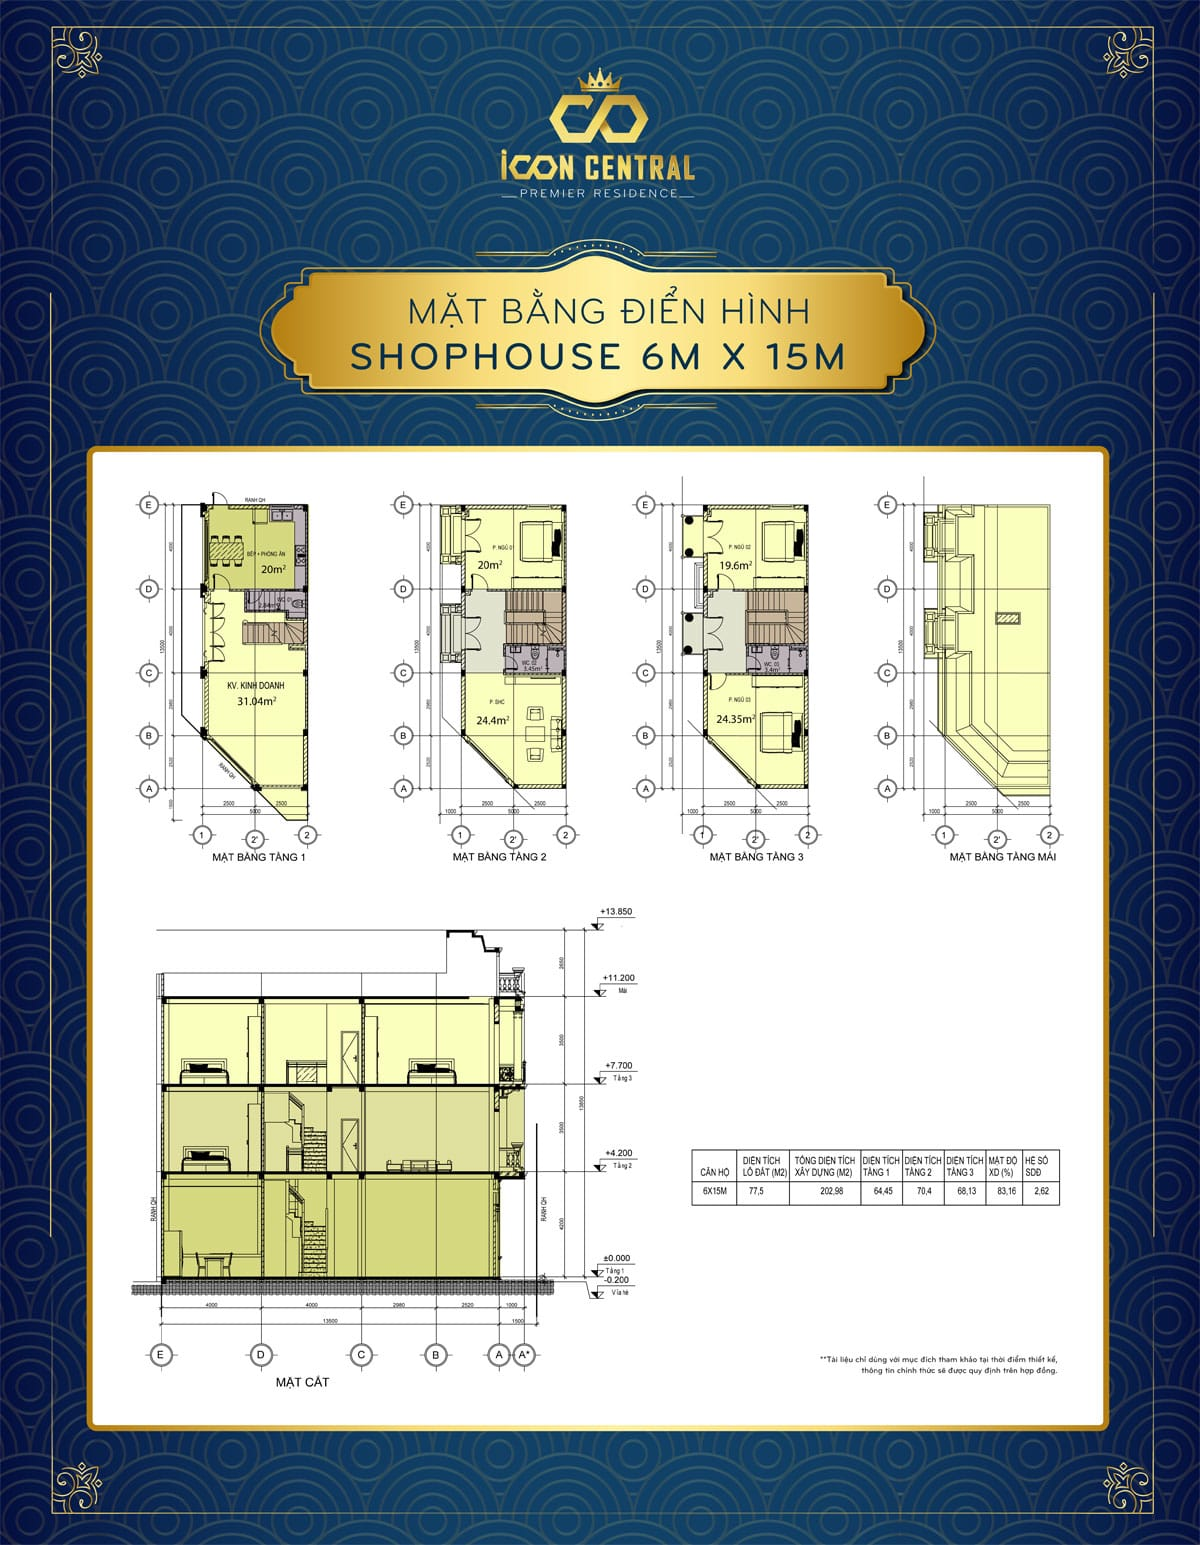 mat bang dien hinh shophouse 6x 15m icon central - SHOP OFFICE ICON CENTRAL DĨ AN BÌNH DƯƠNG